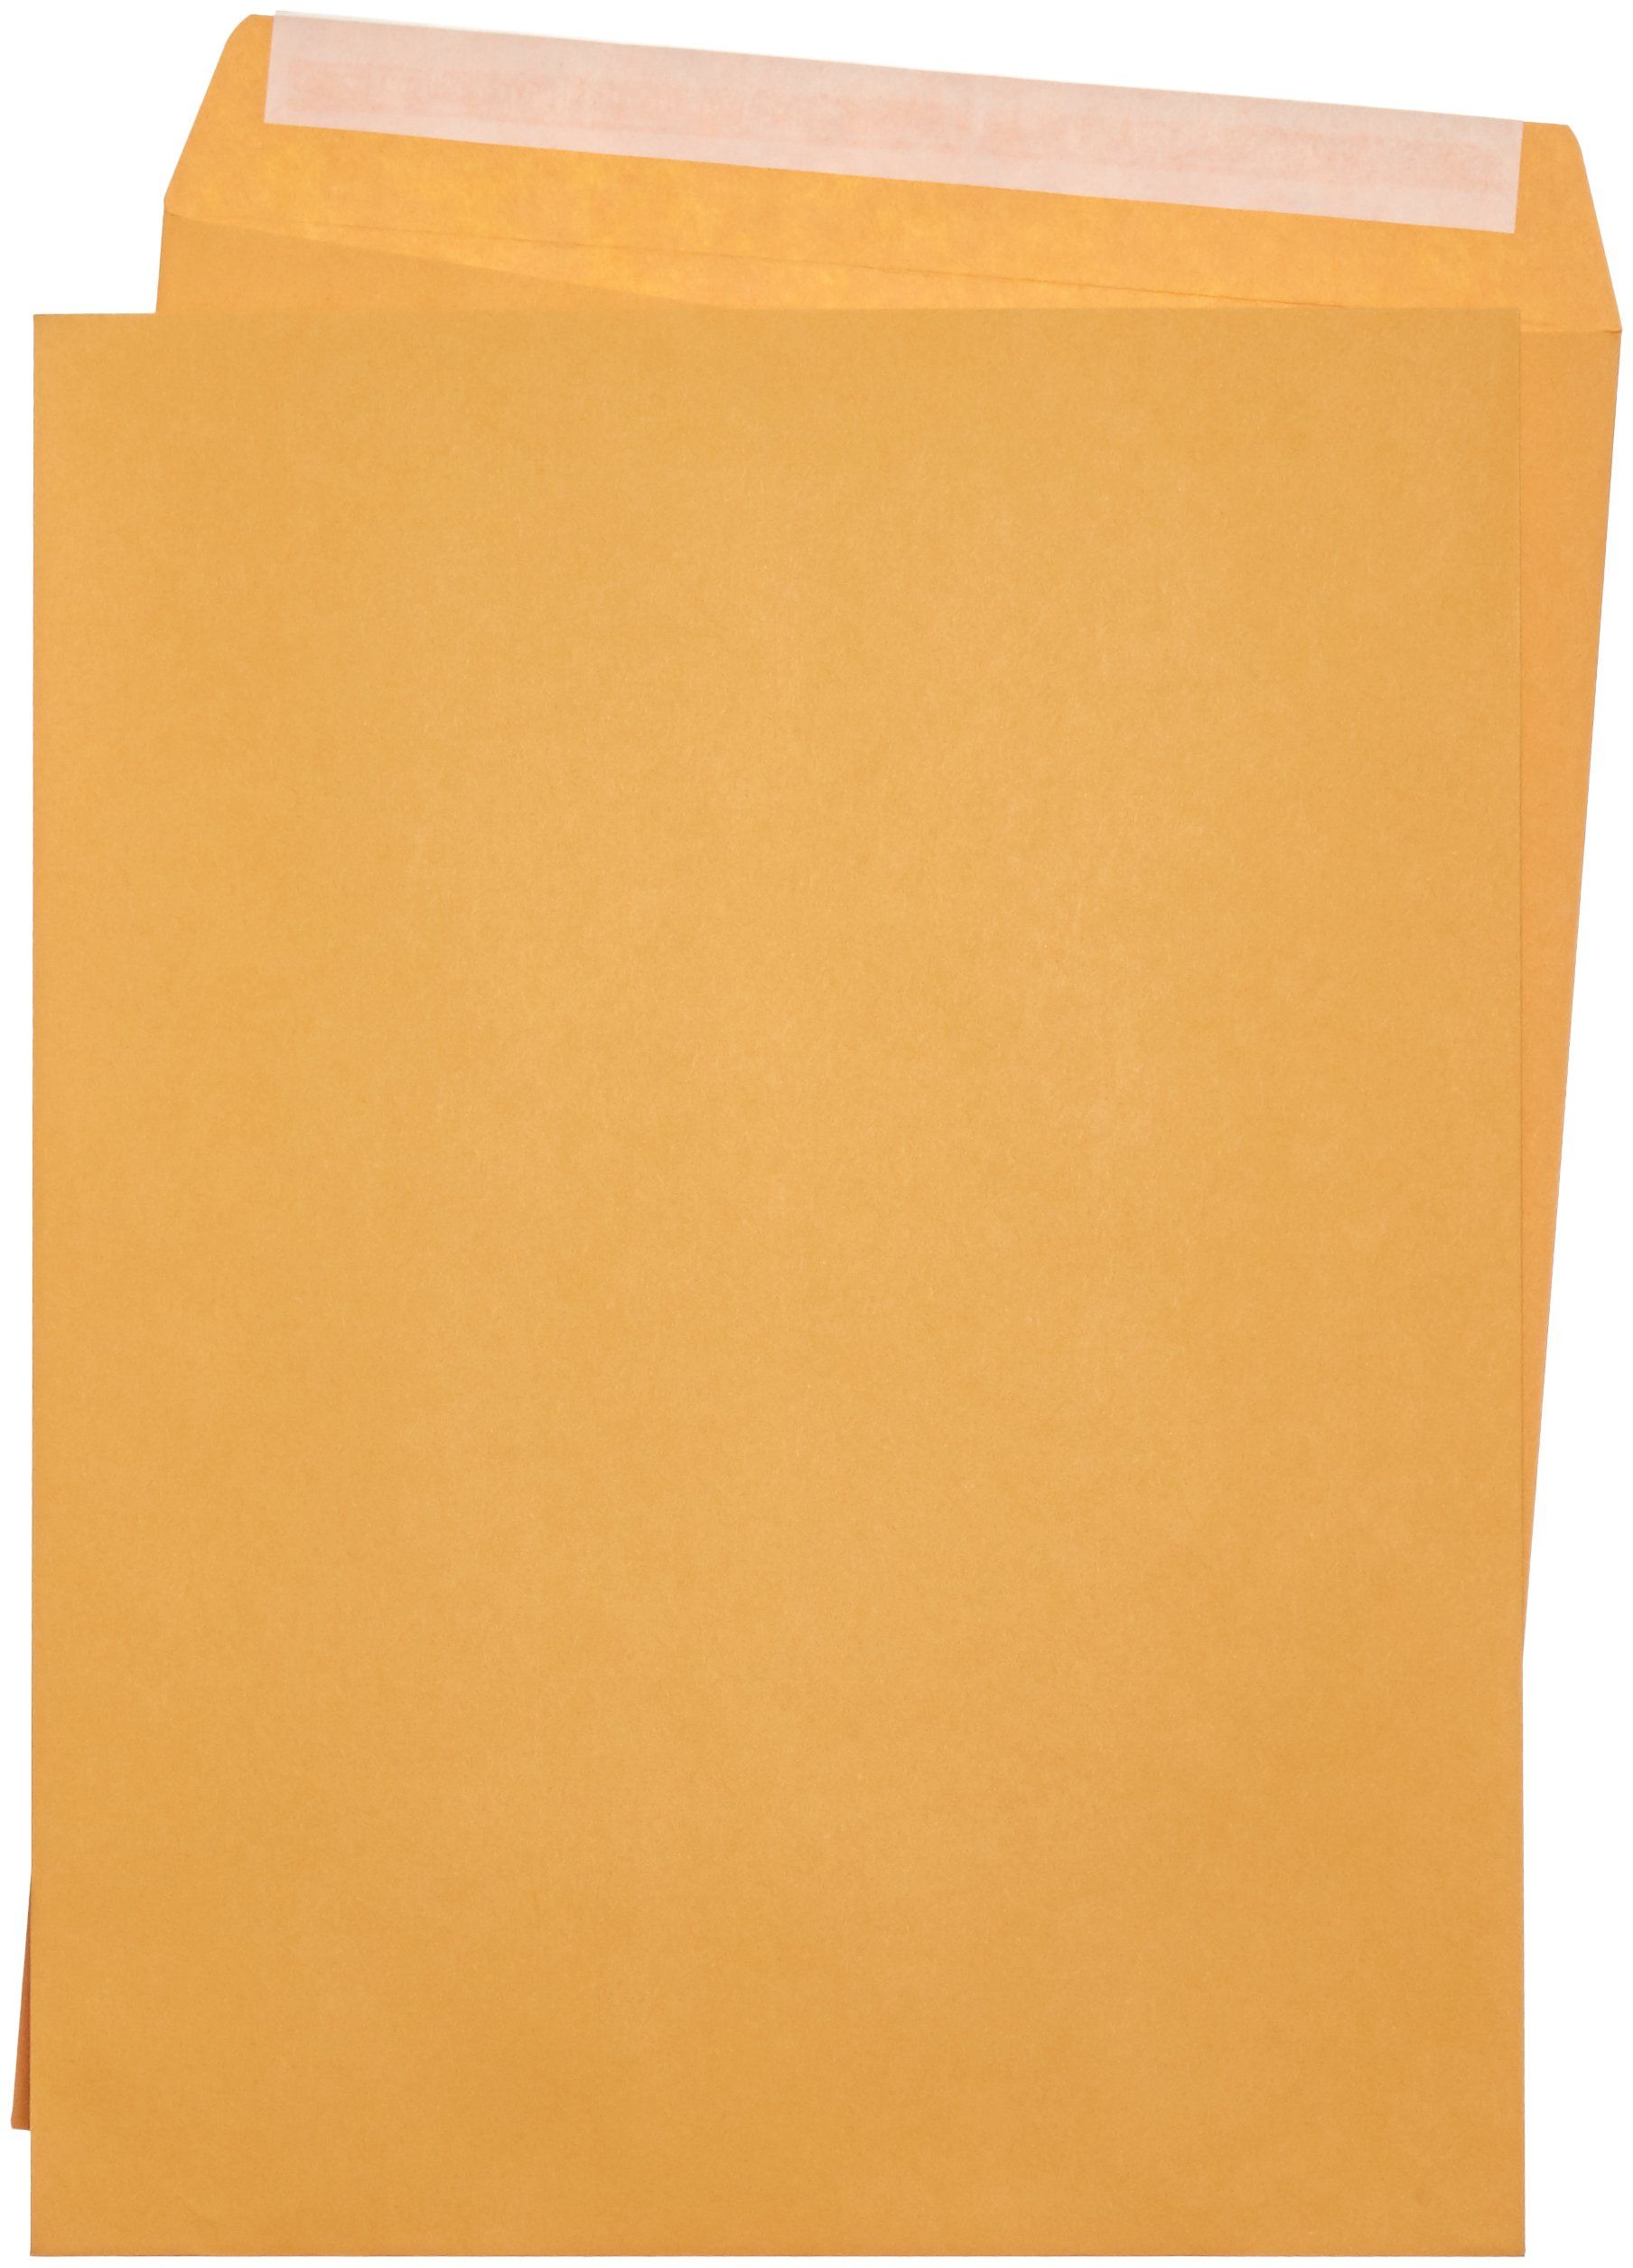 AmazonBasics Catalog Mailing Envelopes, Peel & Seal, 10x13 Inch, Brown Kraft, 250-Pack by AmazonBasics